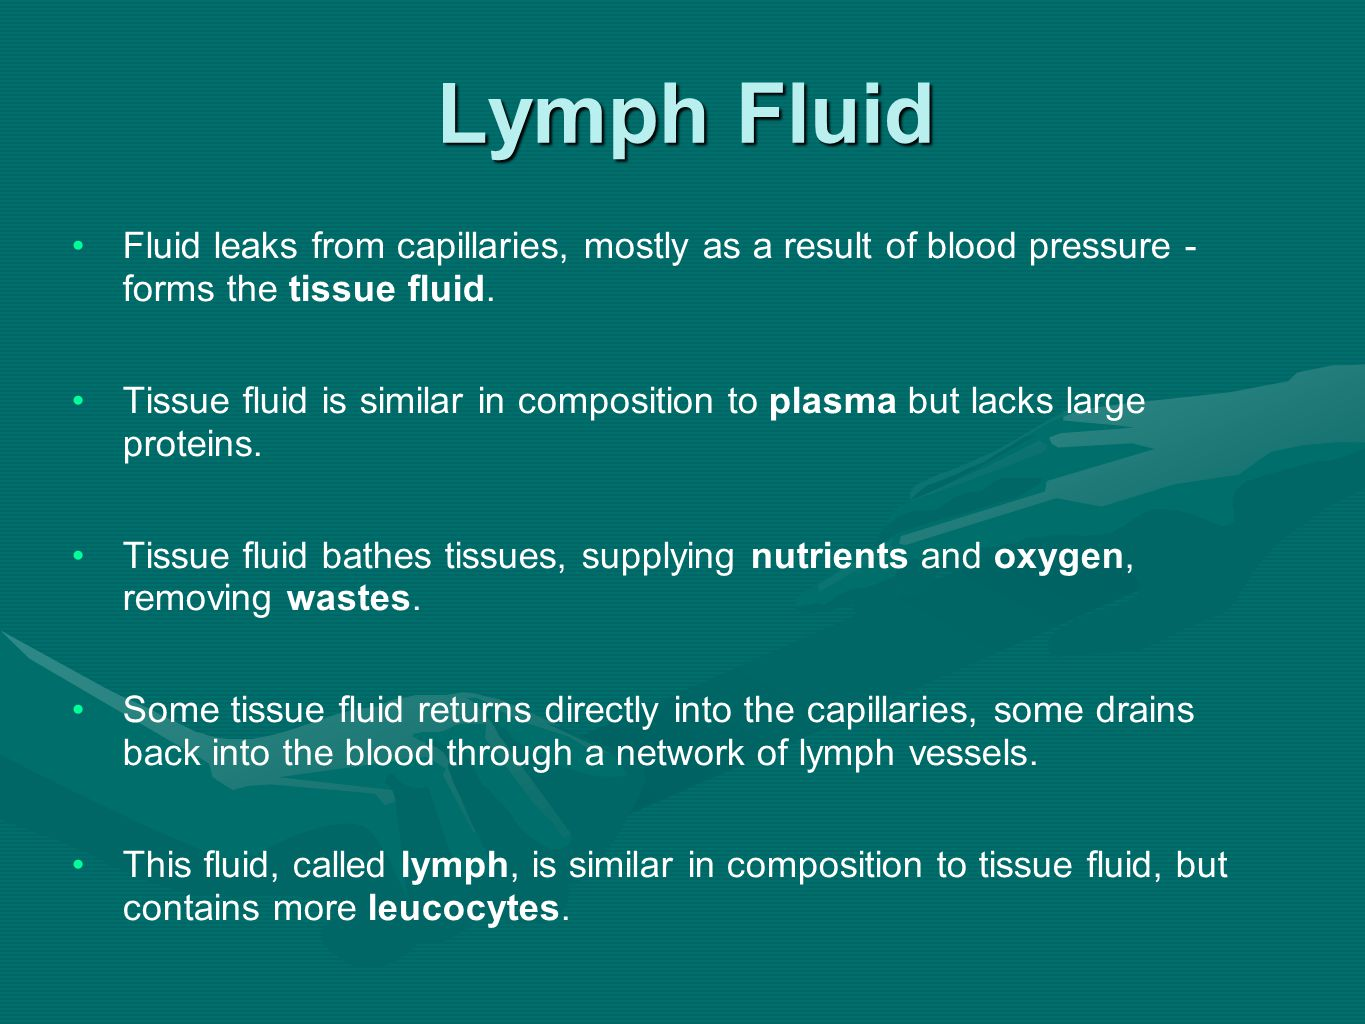 Fluid leaks from capillaries, mostly as a result of blood pressure - forms the tissue fluid.